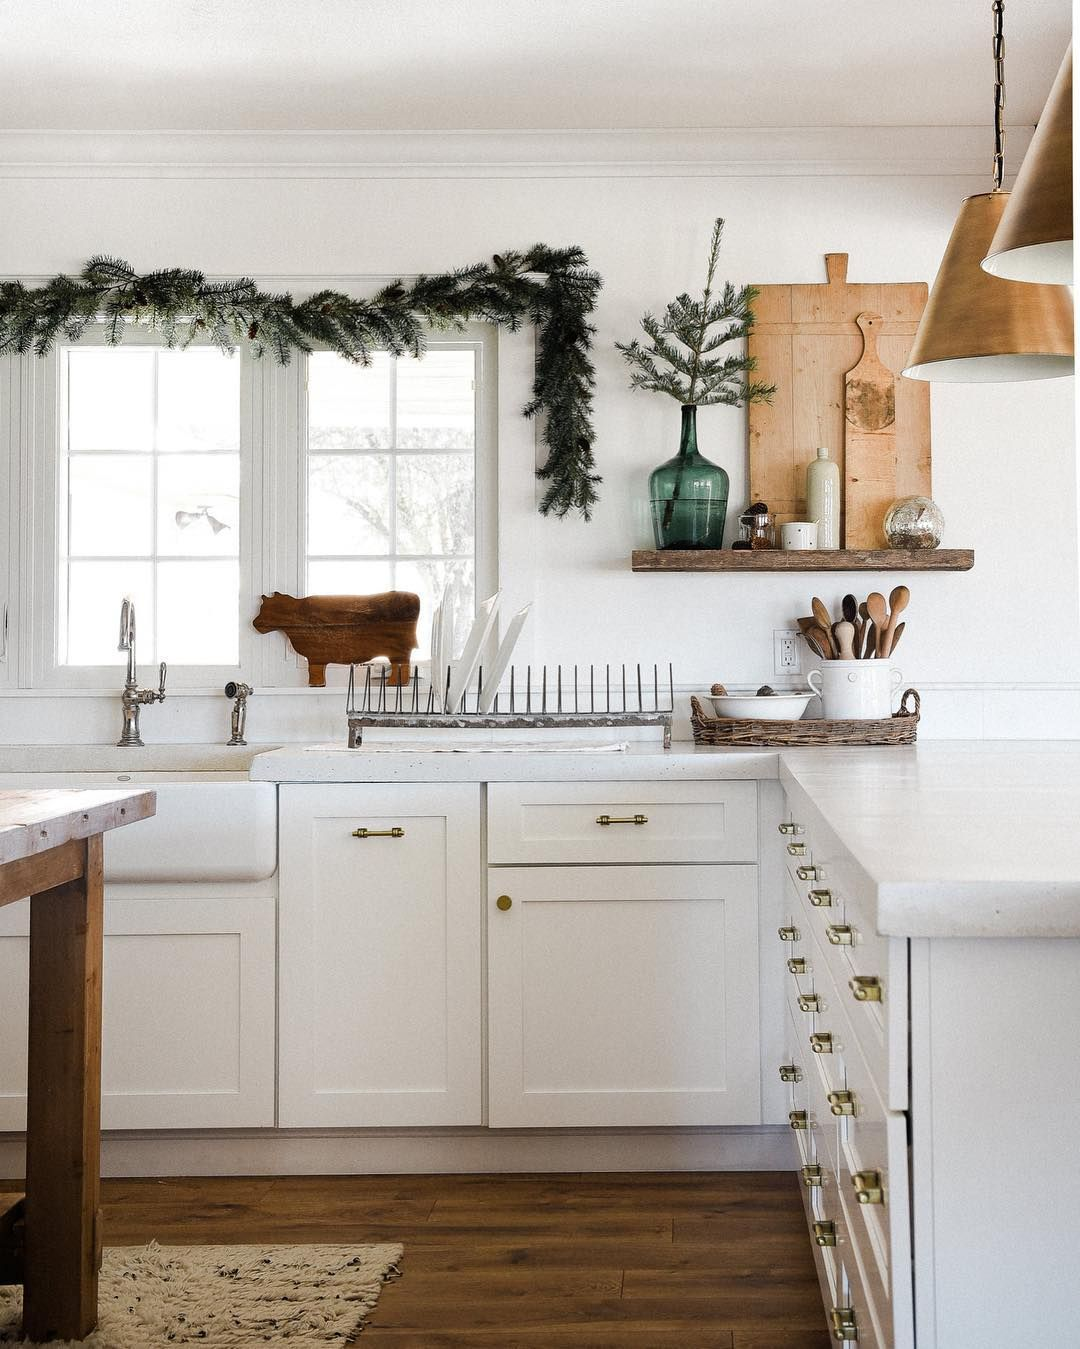 Farmhouse Christmas Kitchen Decor via @boxwoodavenue